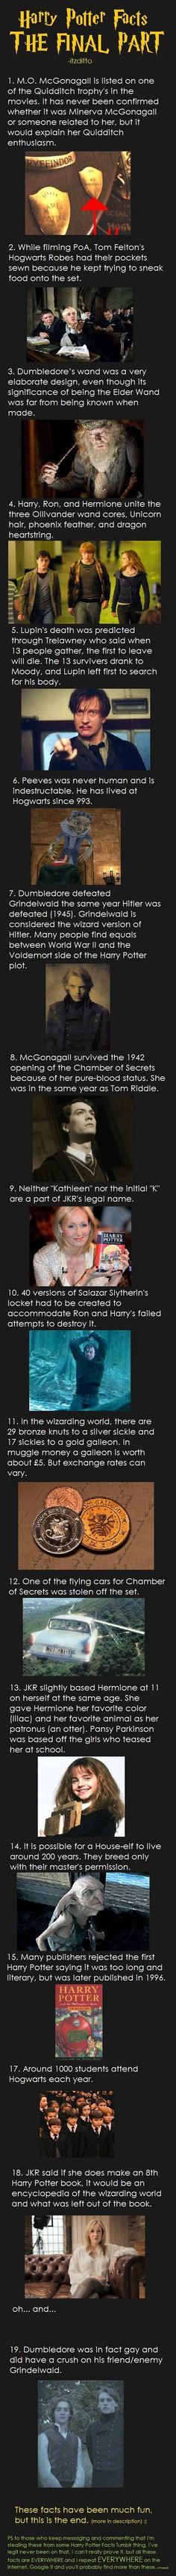 Harry Potter Facts 9